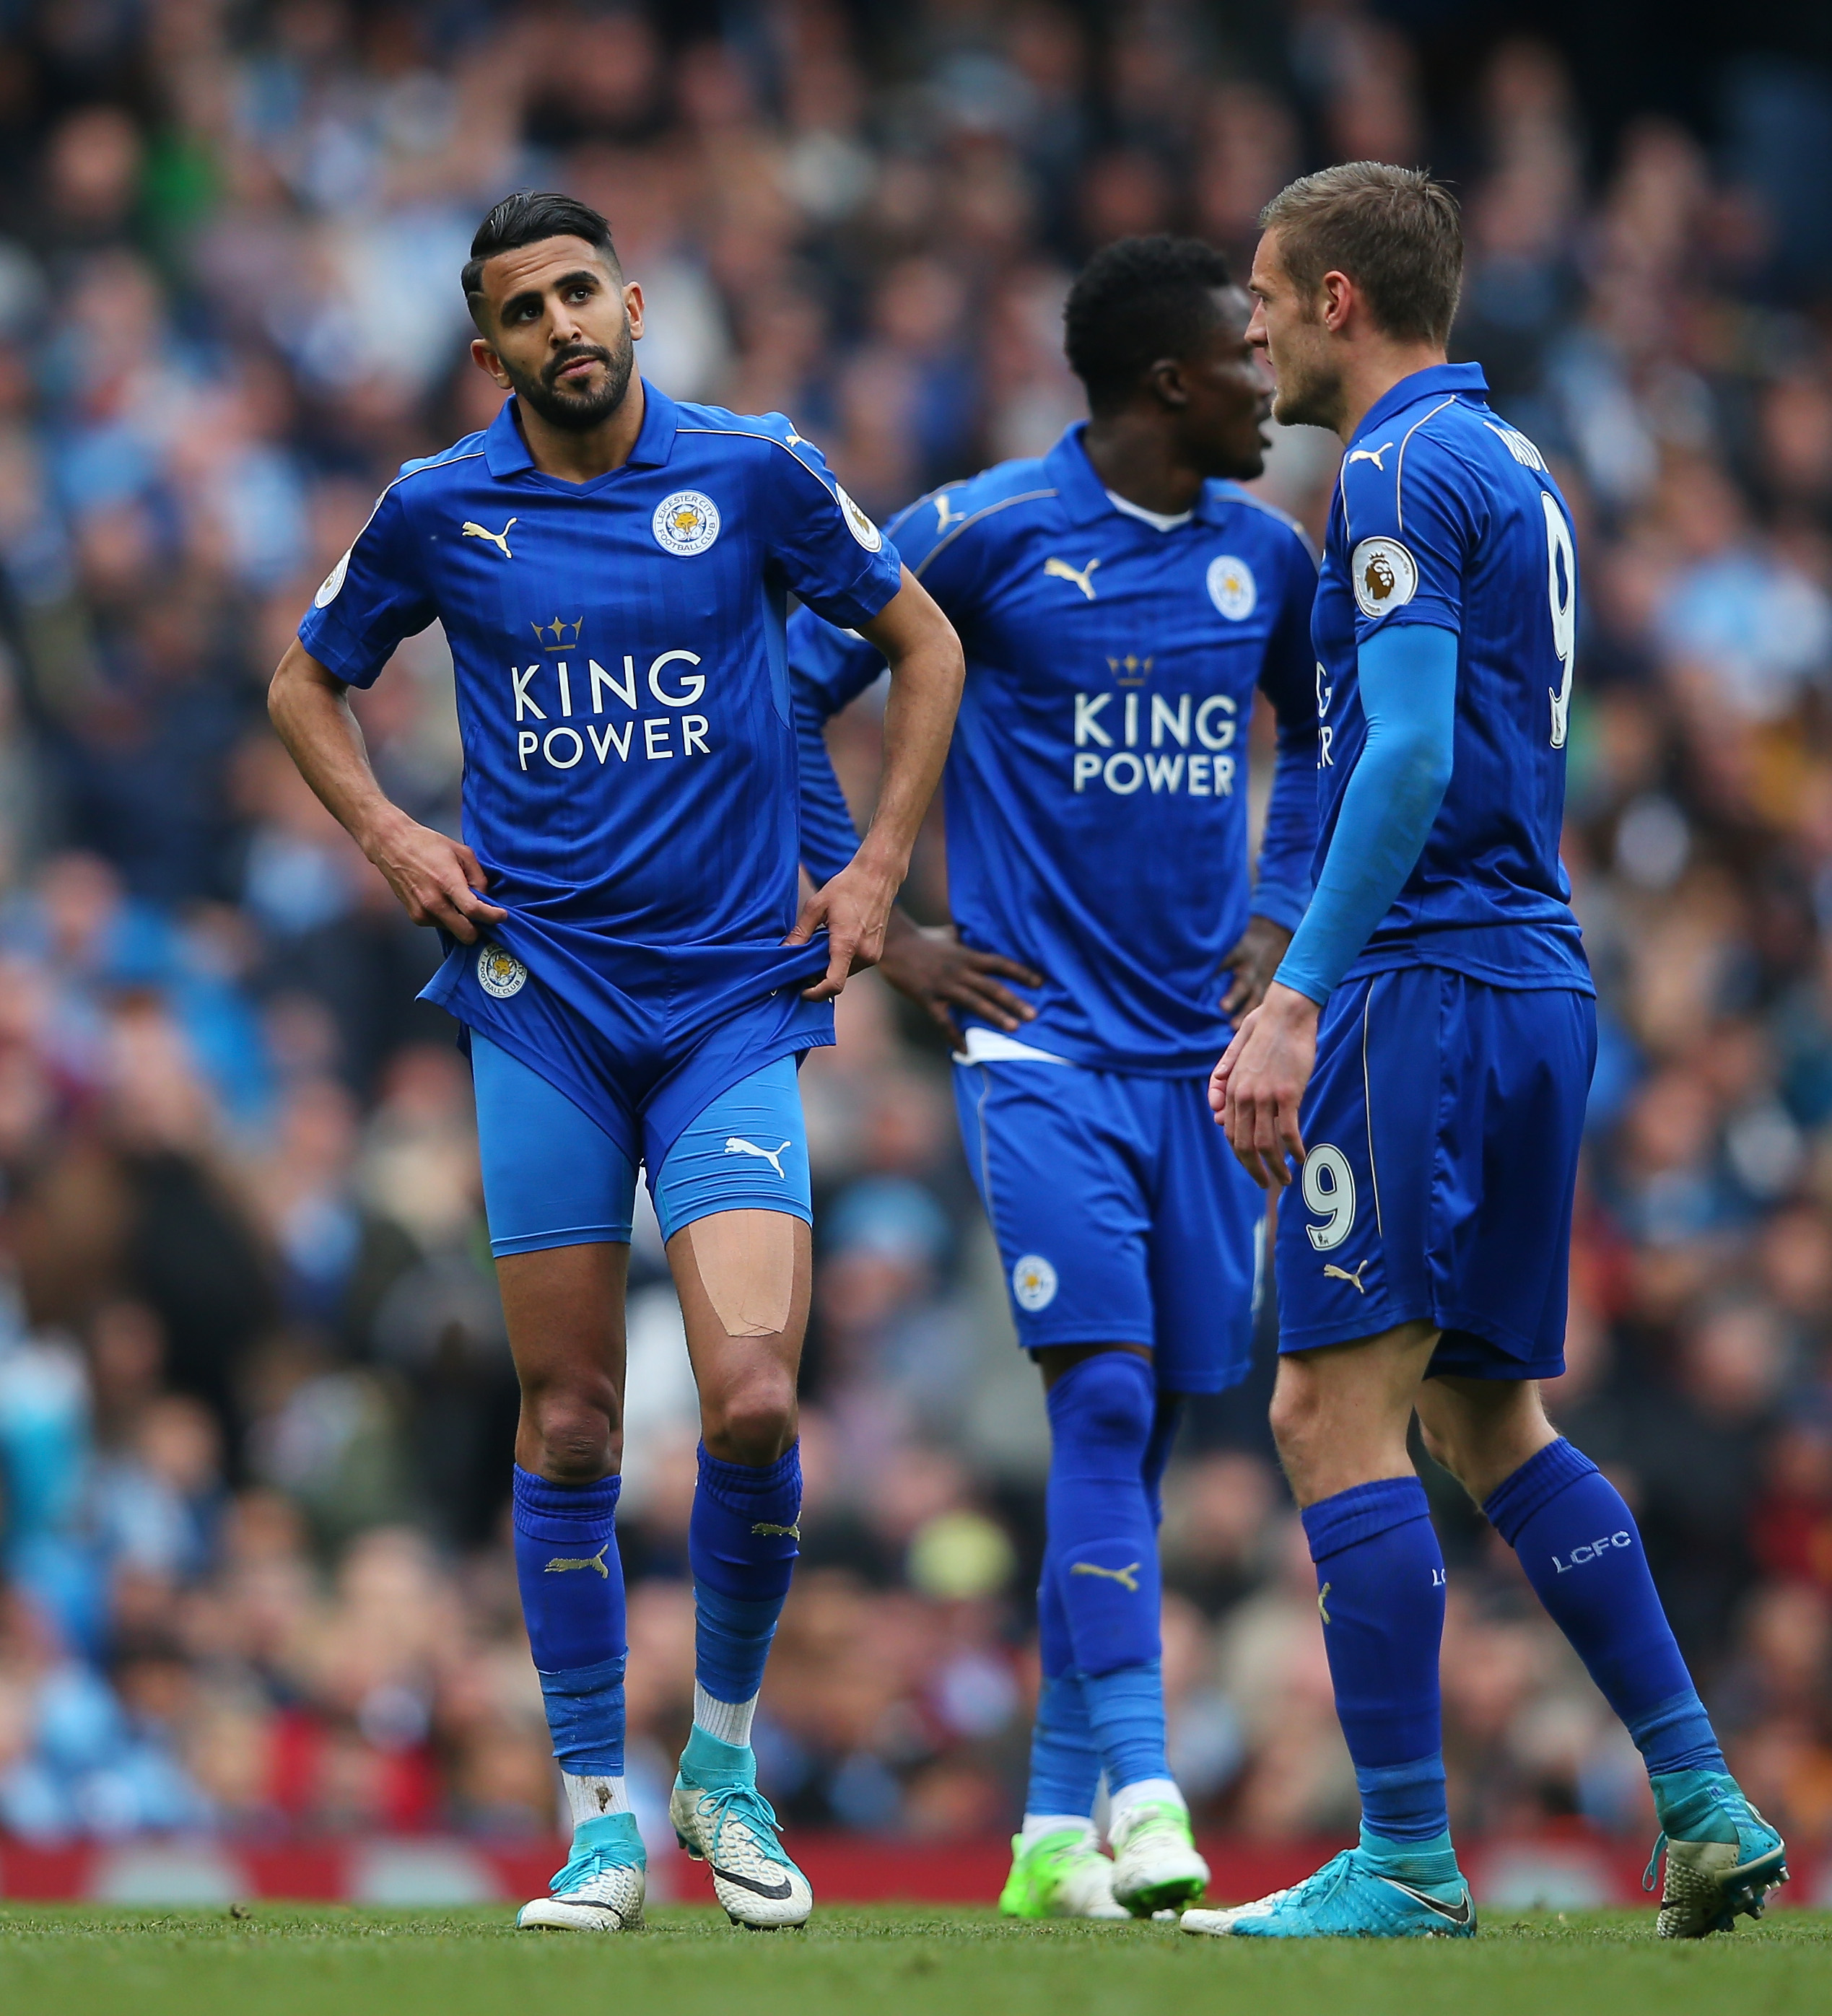 £50m too much for Leicester star